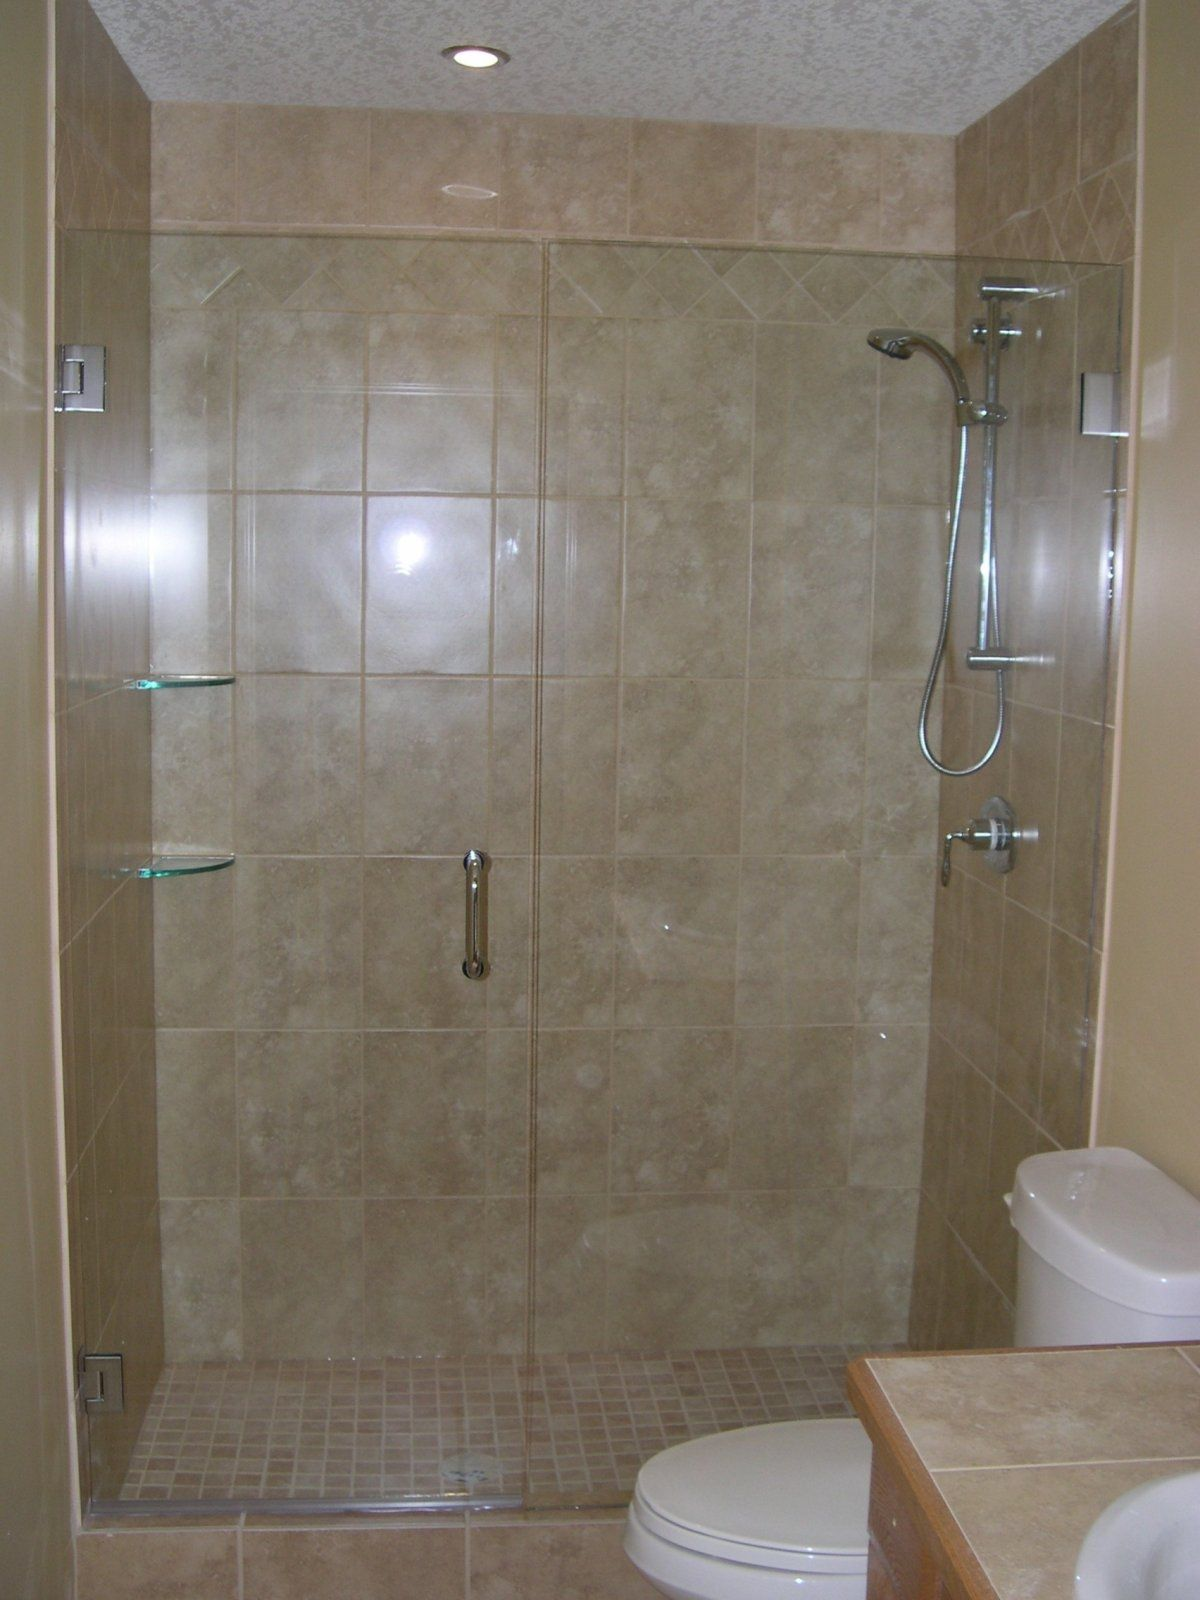 bathroom tub glass door tub glass glass shower